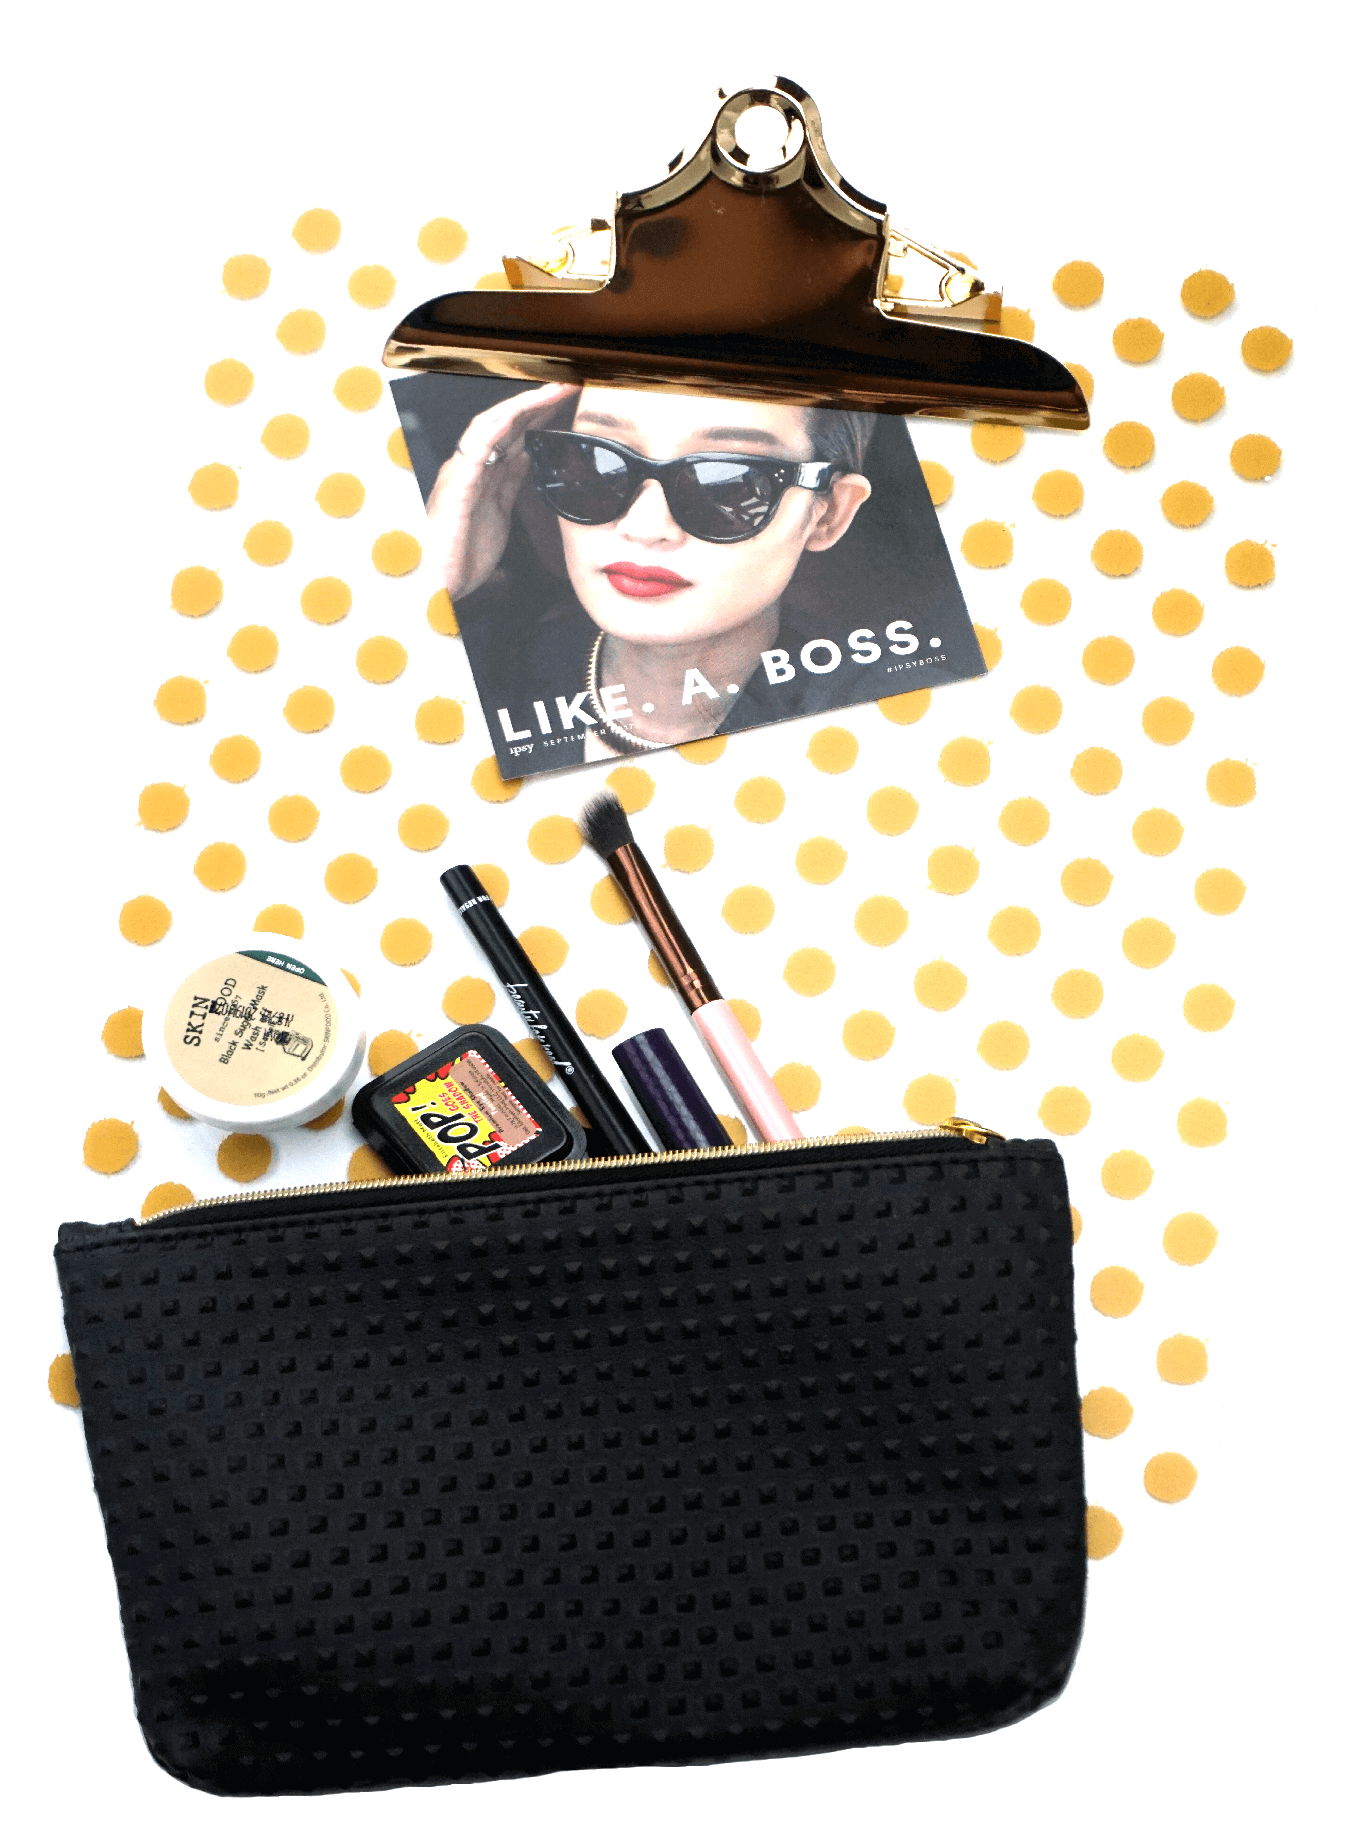 Ipsy Reviews Sepptember 2017 Ipsy Glam Bag   Like A Boss   Chiclypoised   chiclypoised.com